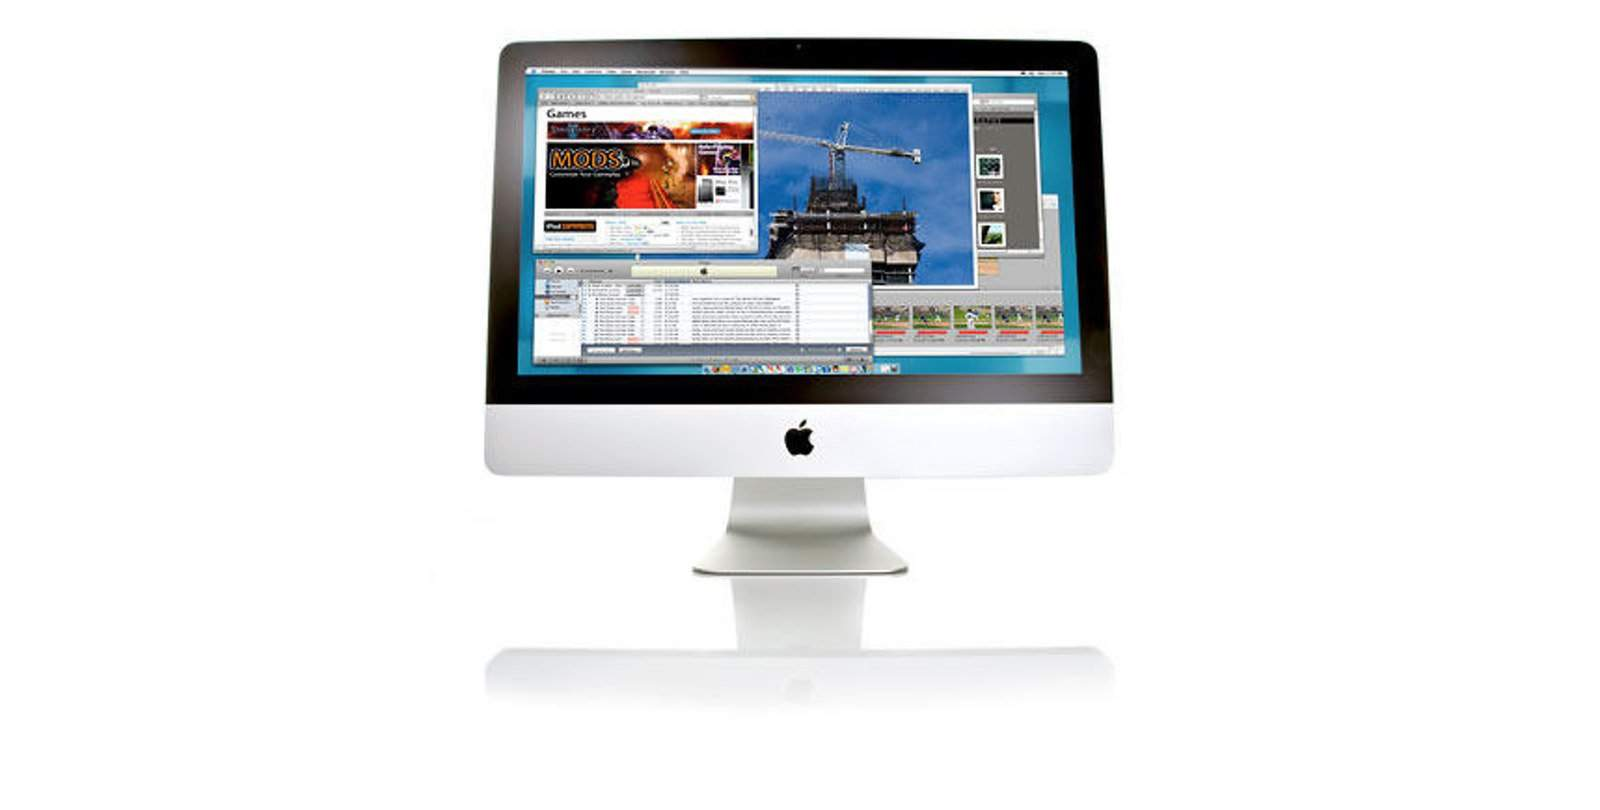 new 21 5 inch imac lowers cost barrier for potential mac. Black Bedroom Furniture Sets. Home Design Ideas